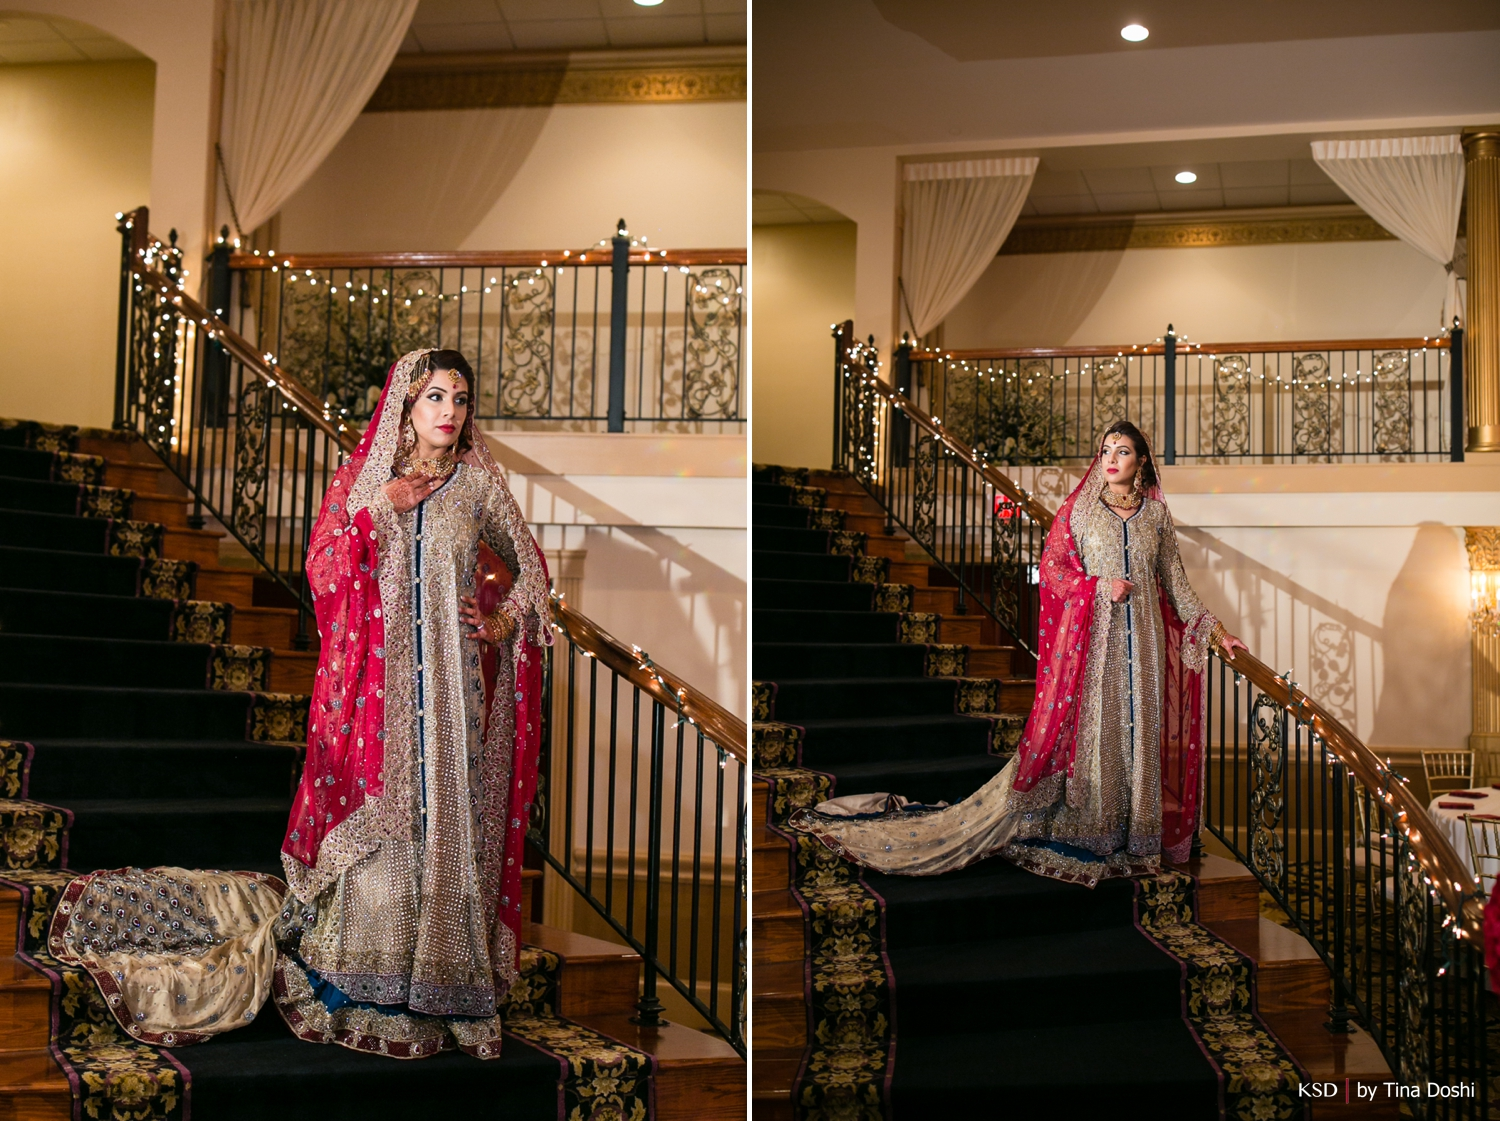 nj_south_asian_wedding_0073